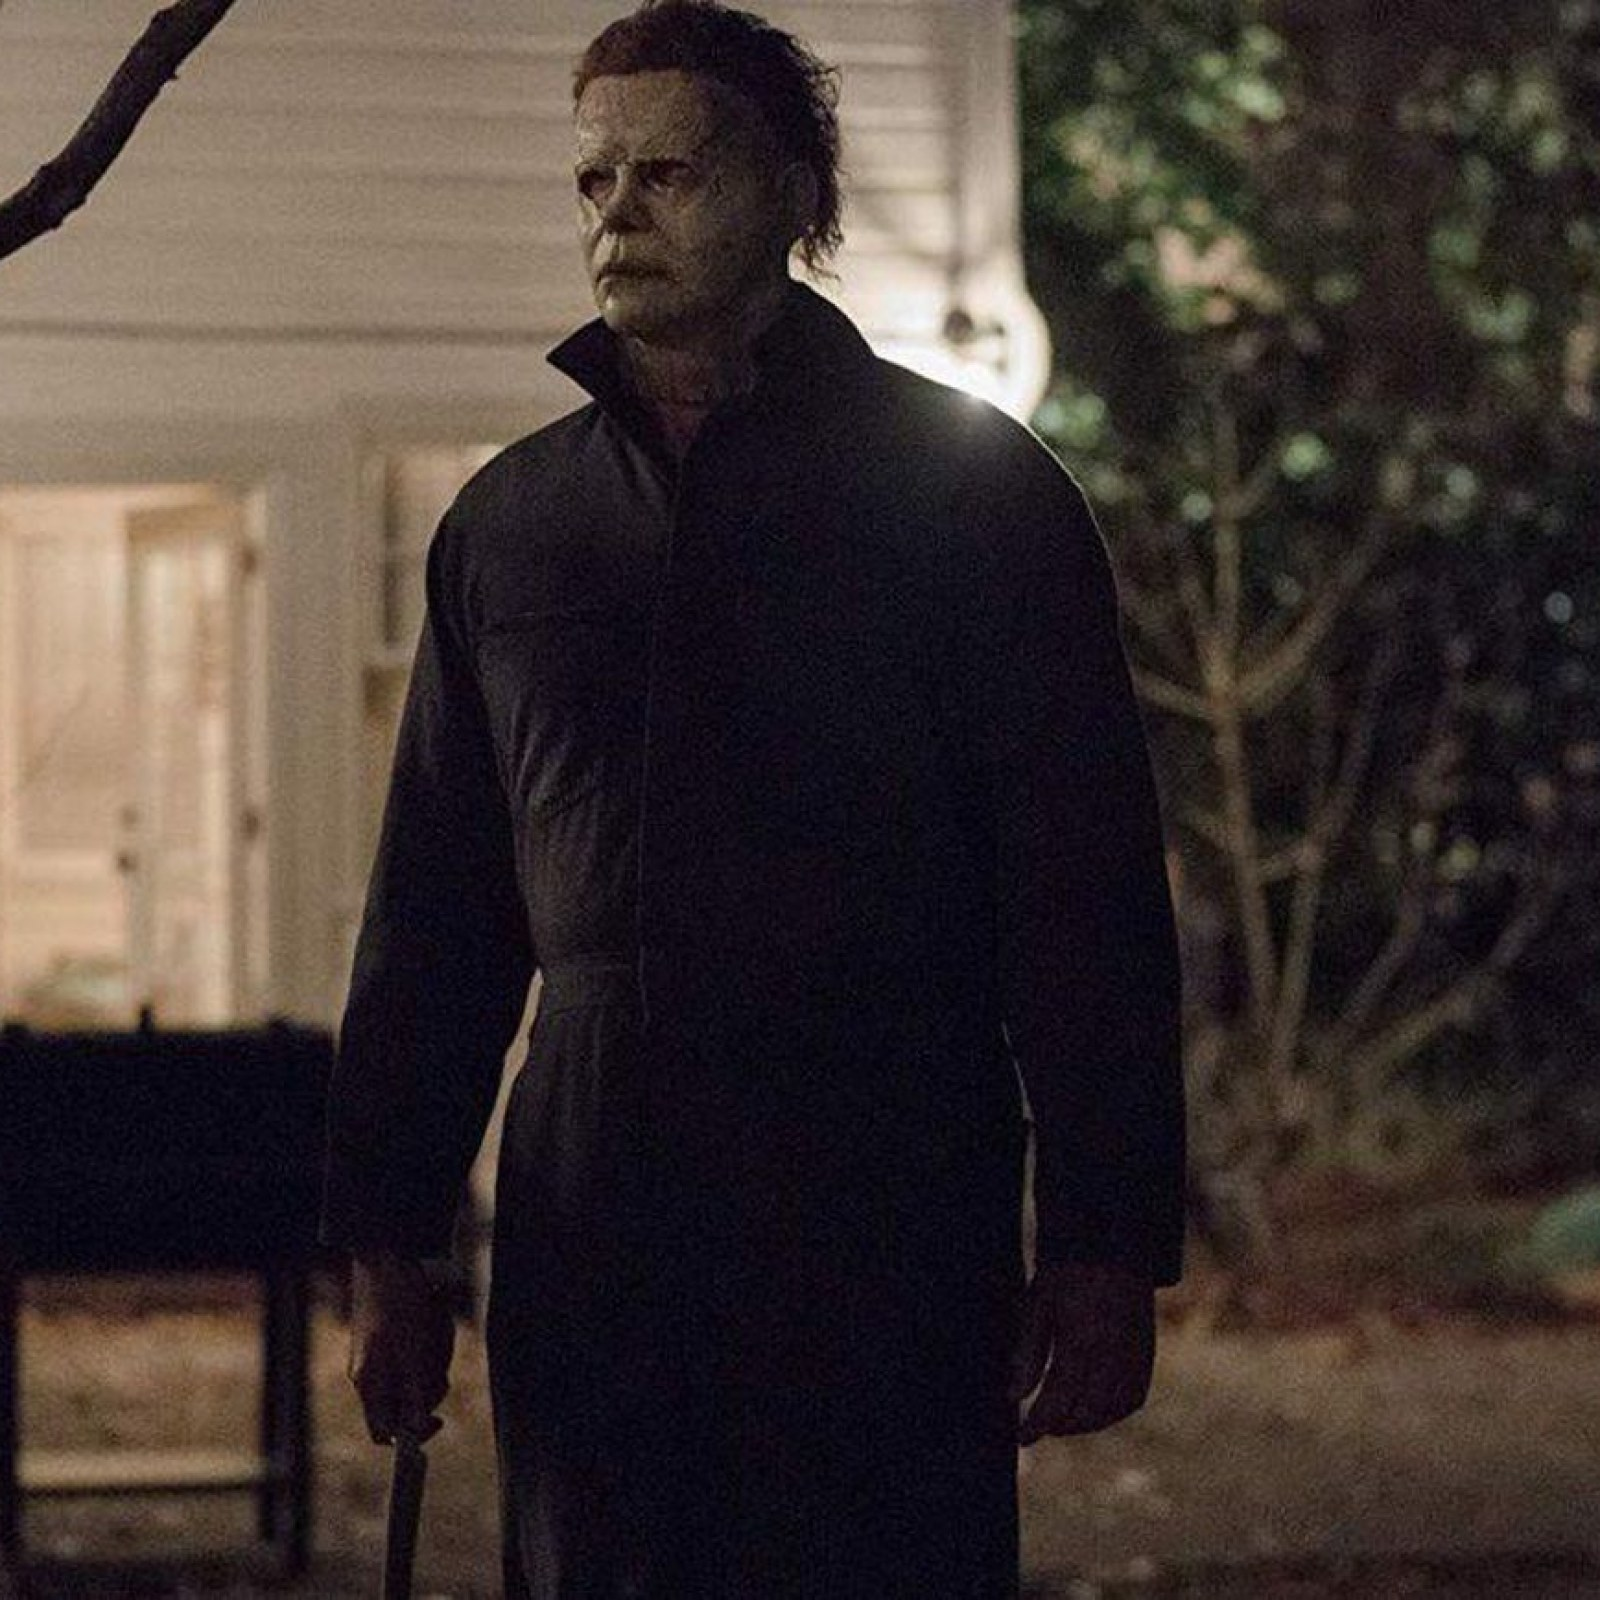 Halloween 2018 Alternate Ending.Halloween 2018 Ending Is Michael Myers Even After Laurie Strode